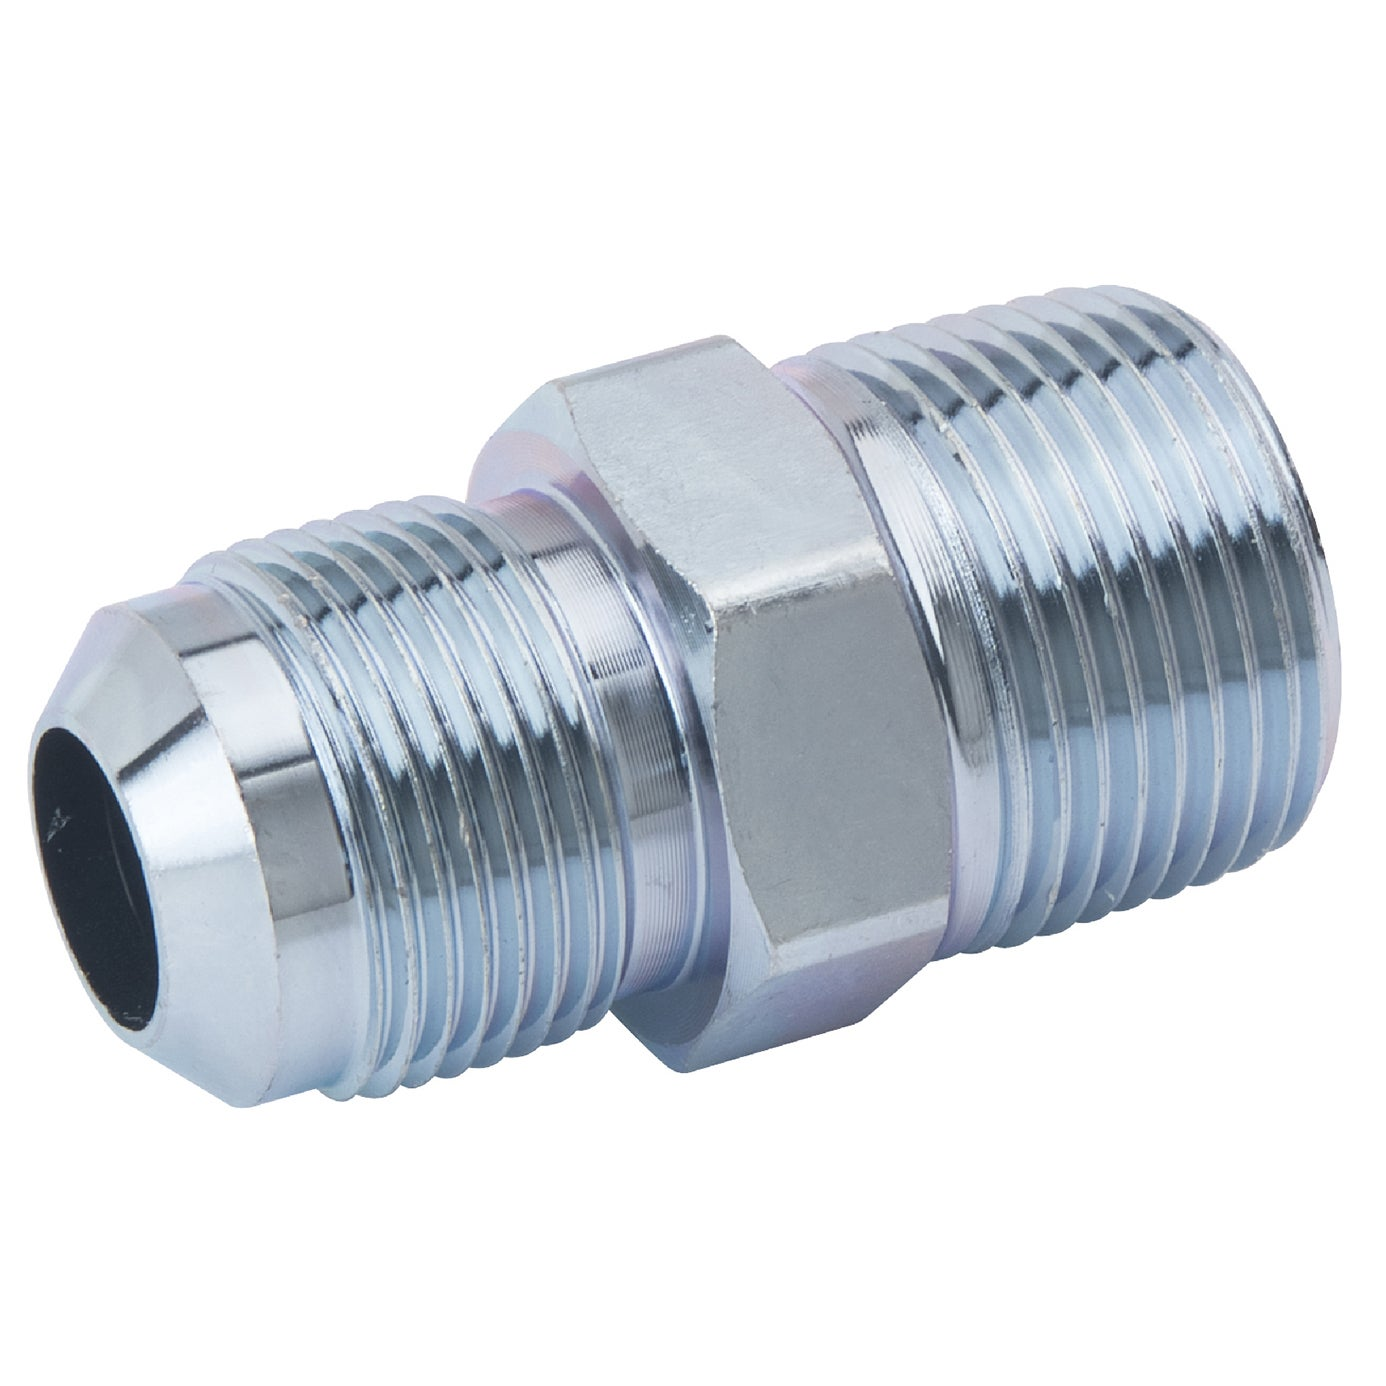 Pack of 1 Brass Craft PSSC-64 Gas Fitting Adapter Steel